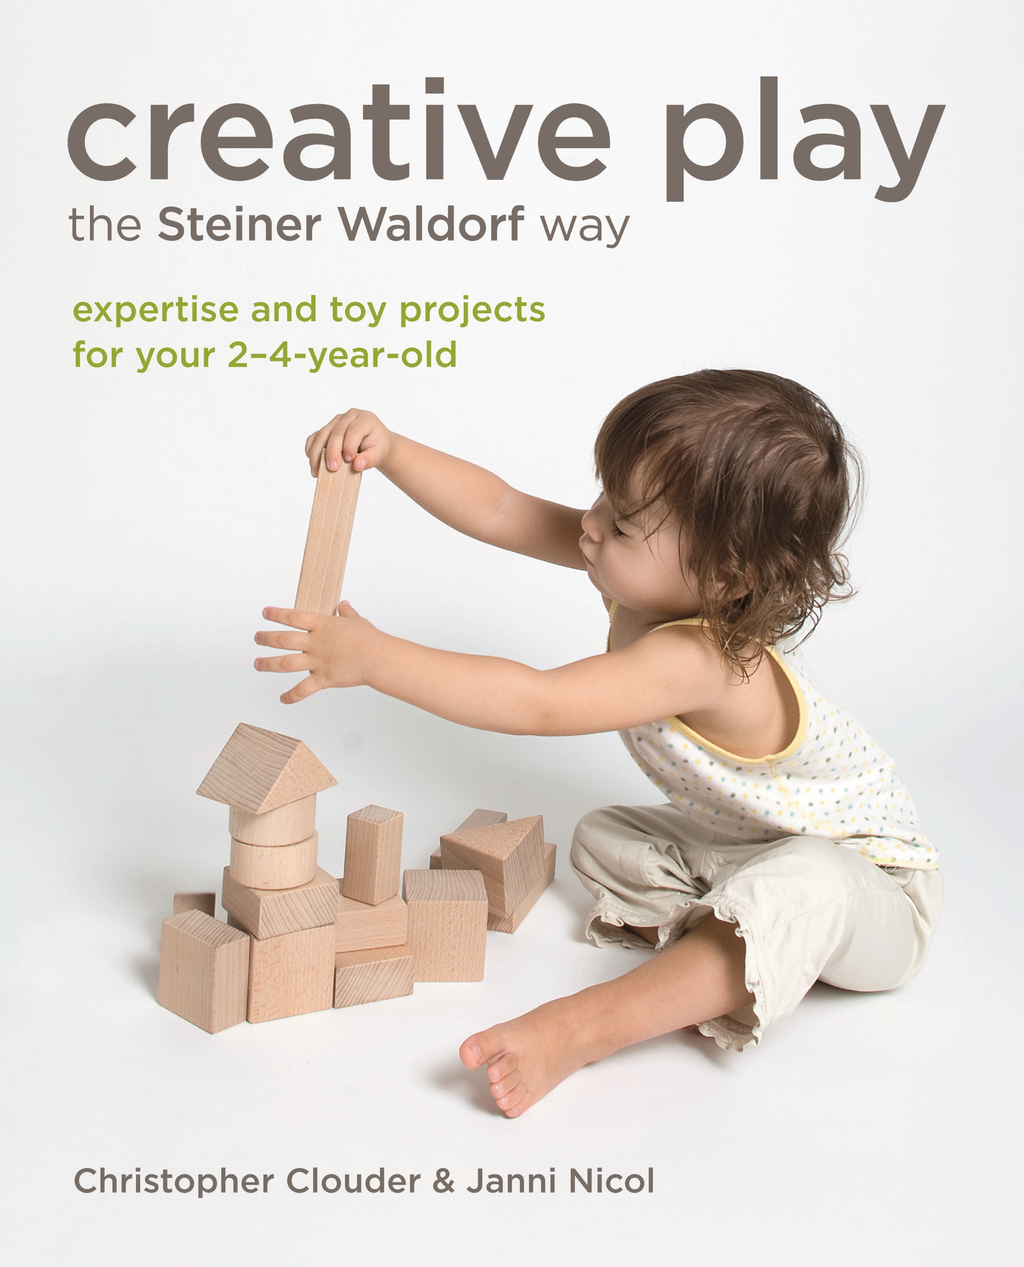 Creative Play the Steiner Waldorf Way Expertise and toy projects for your 2-4-year-old